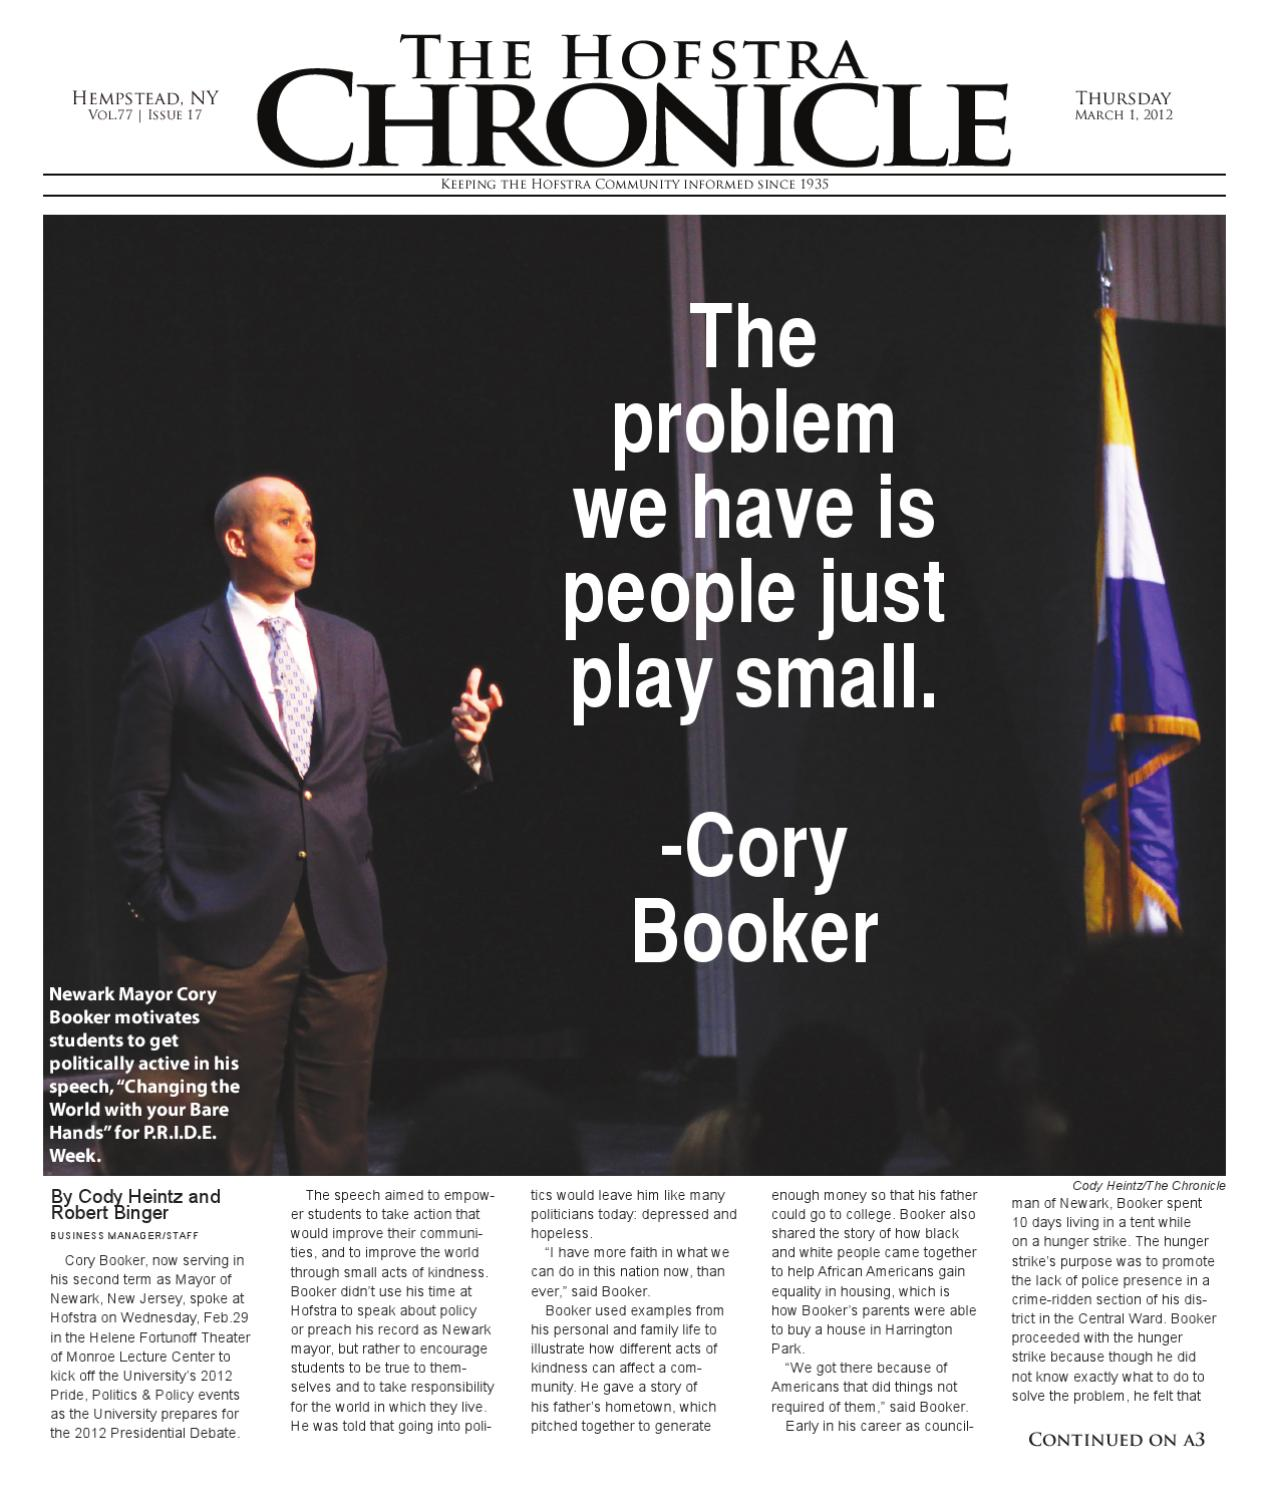 The Hofstra Chronicle: March 1st, 2012 Issue by The Hofstra